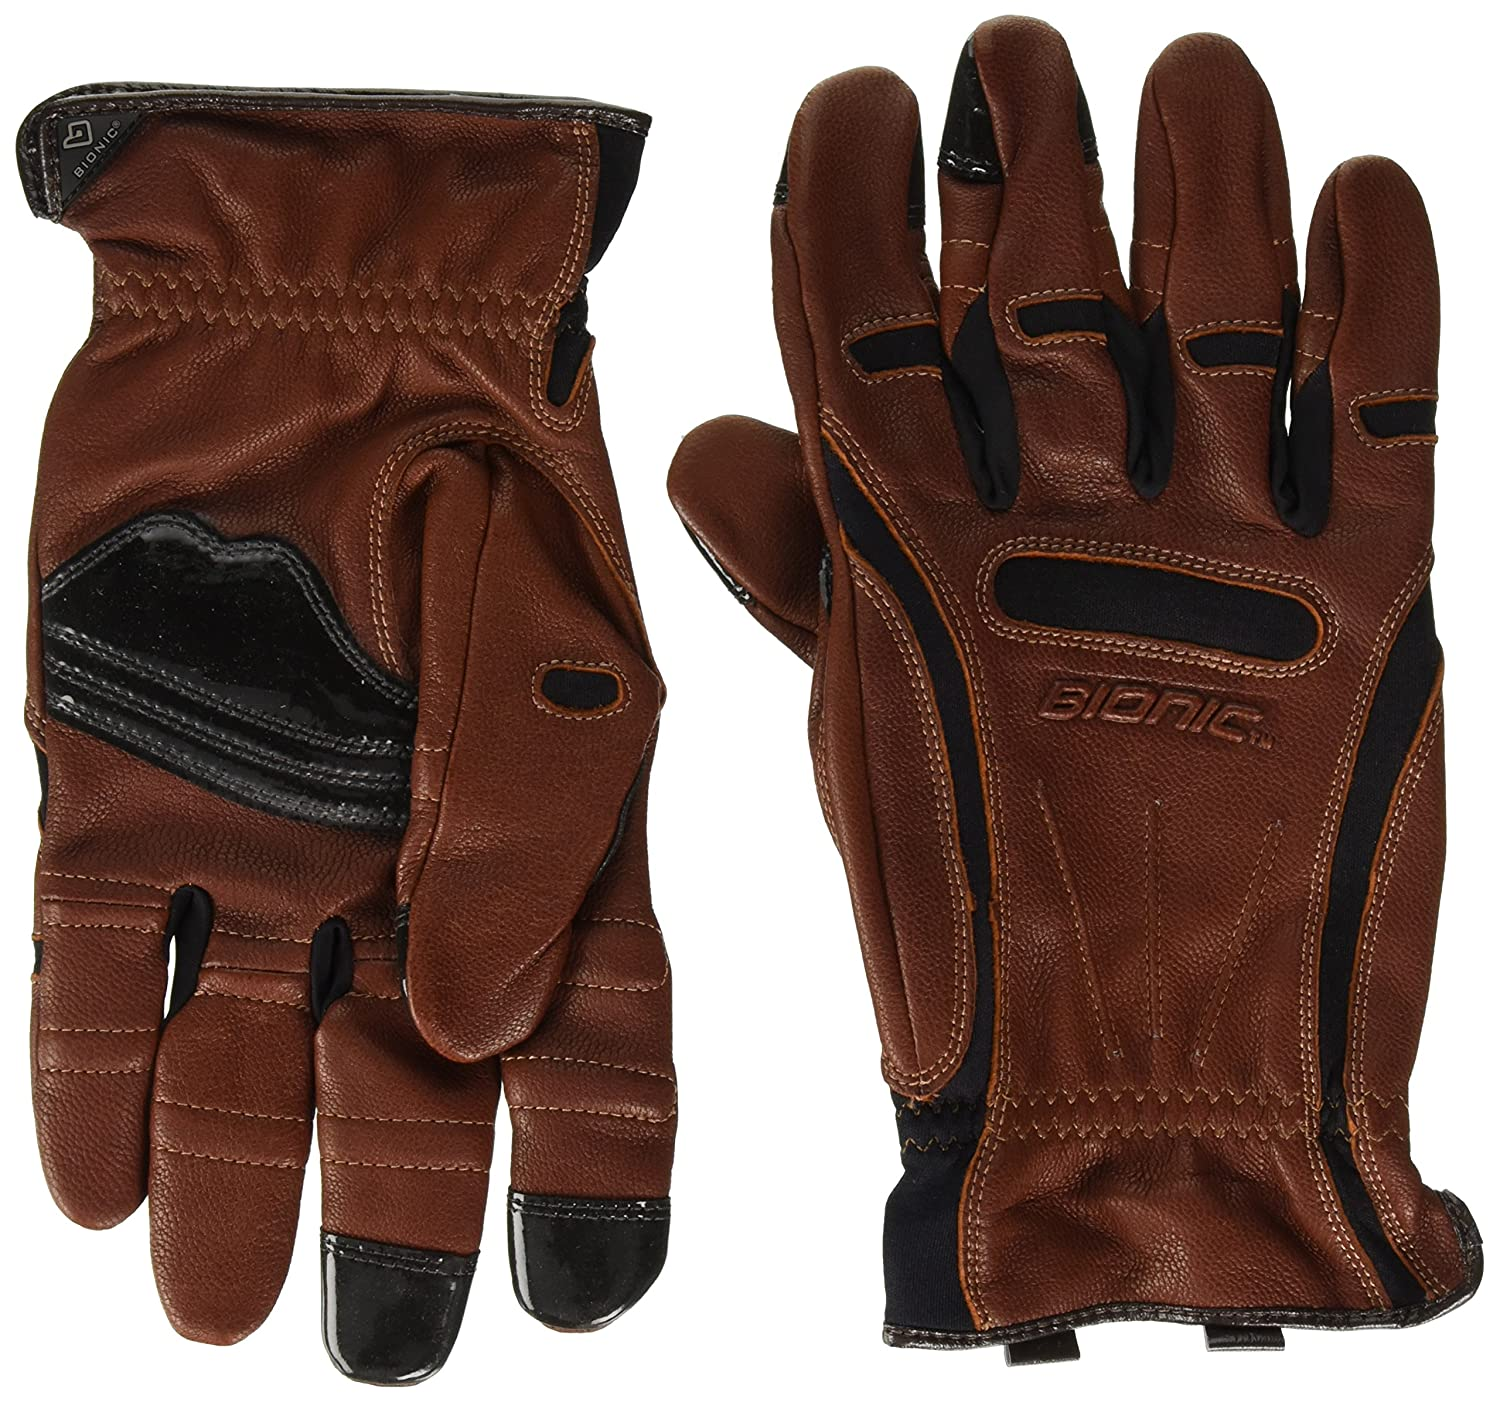 Bionic GDTN-M-P-BR-XL Men's Tough Pro with Natural Fit Premium Leather Glove, X-Large Brown